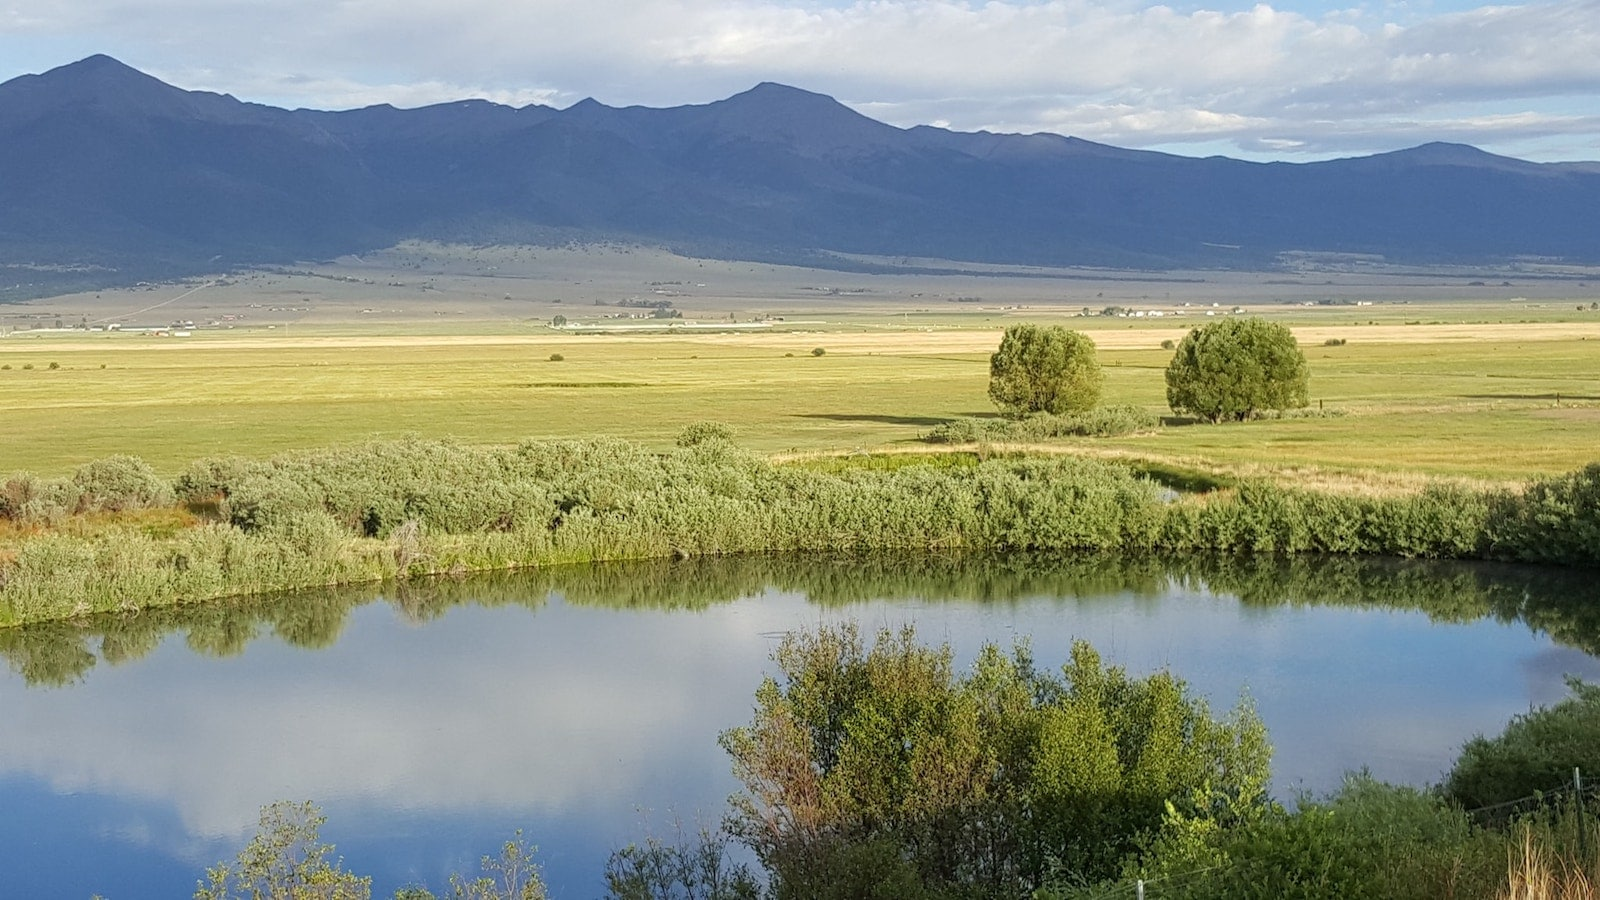 Image of a lake at the bluff in westcliffe, colorado